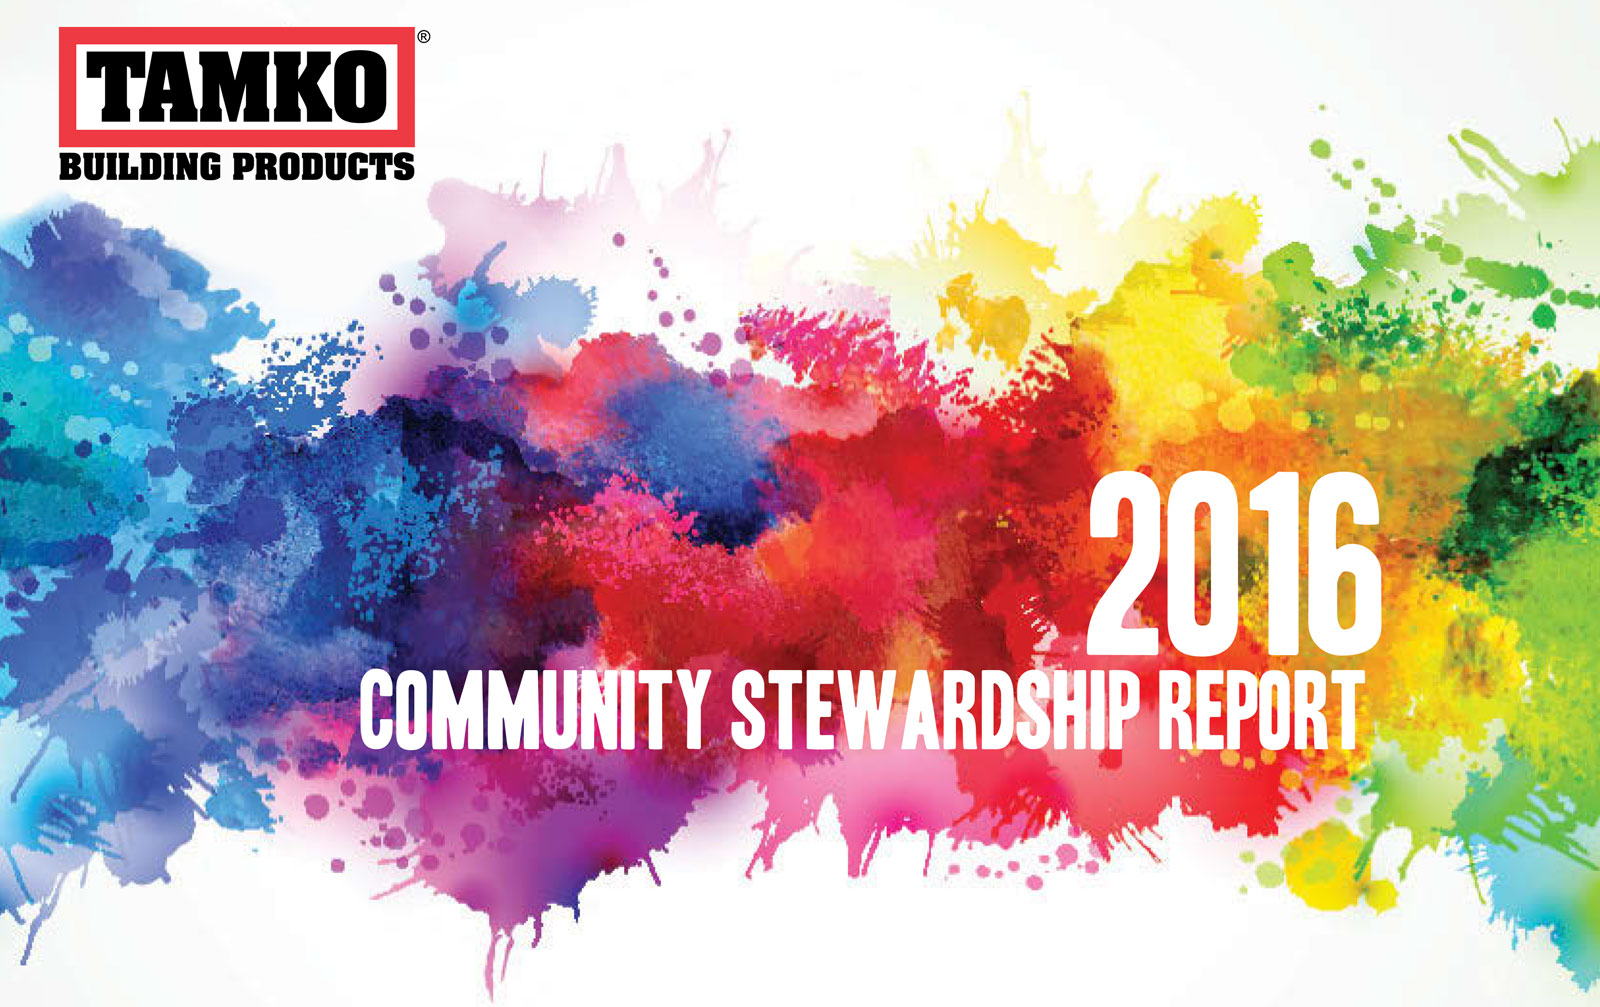 TAMKO Community Stewardship Report 2016